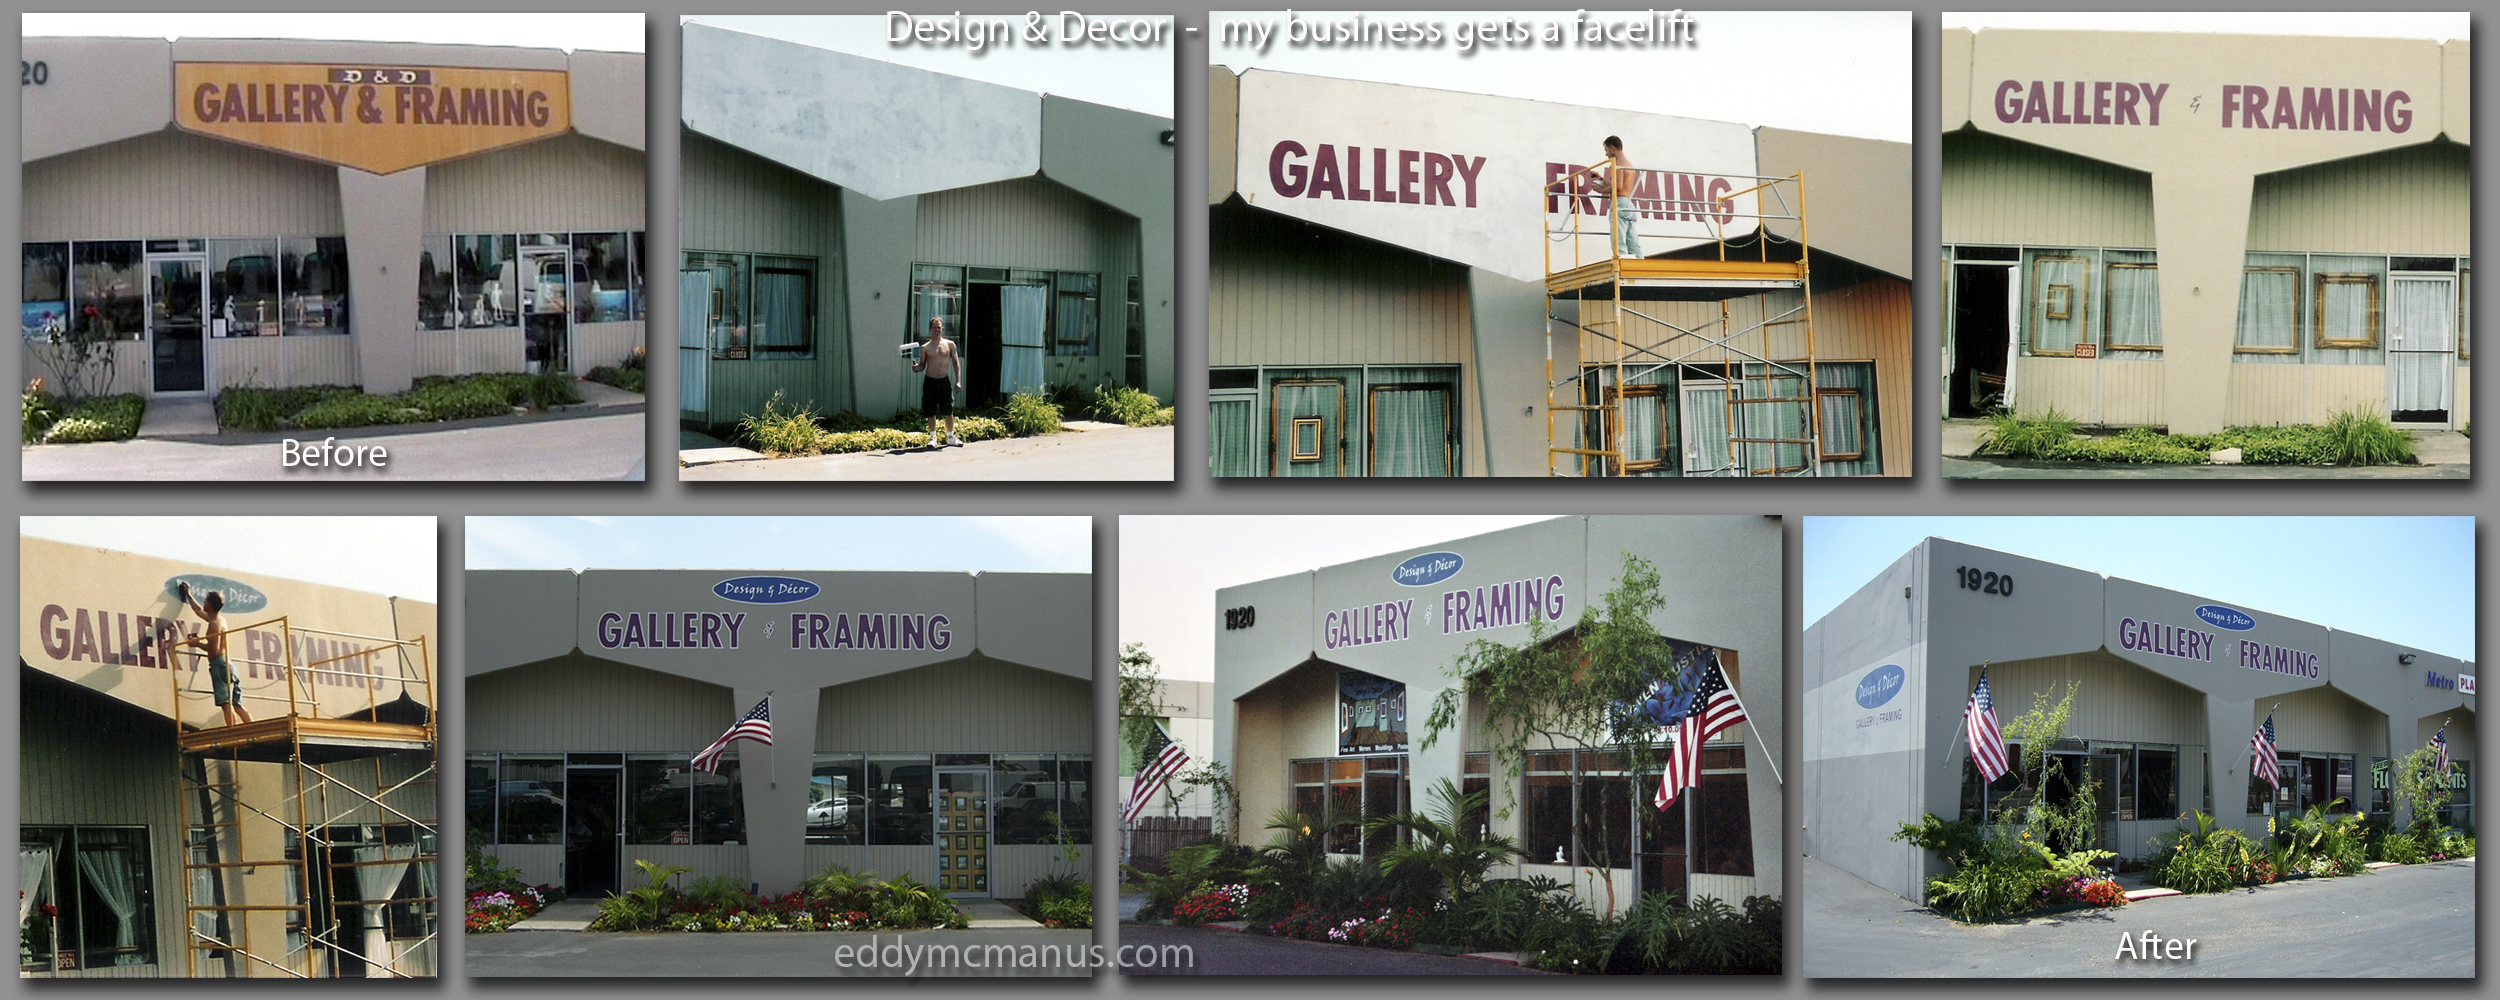 Design & Decor Exterior Before & After